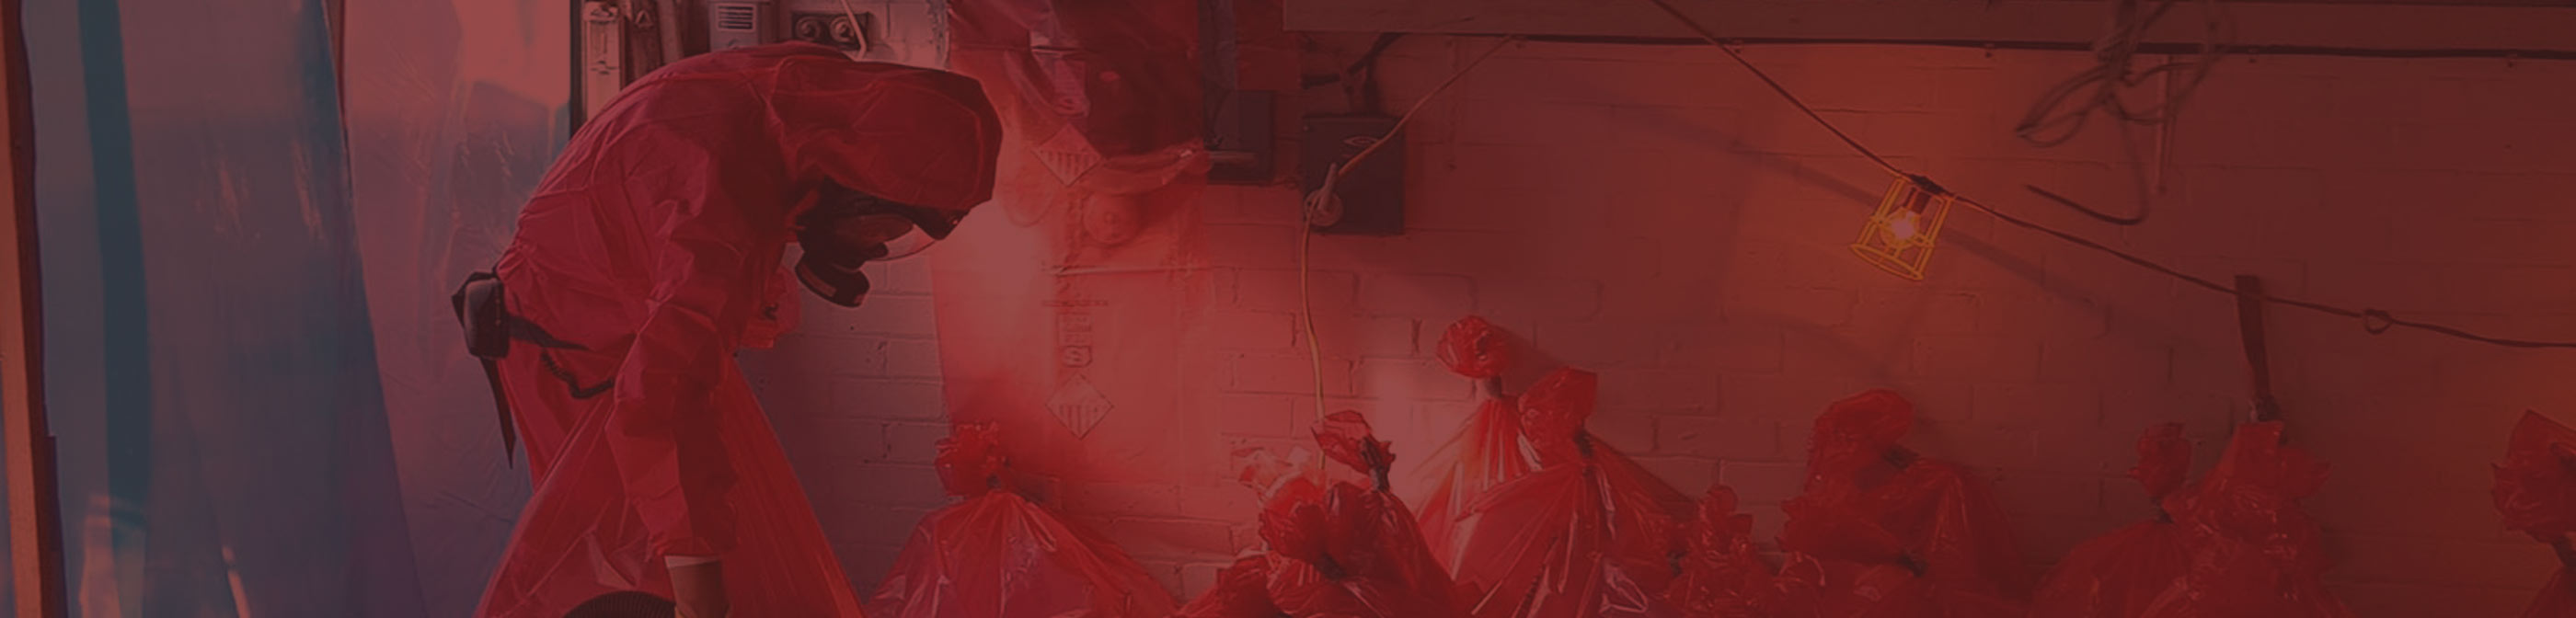 Asbestos Removal Background